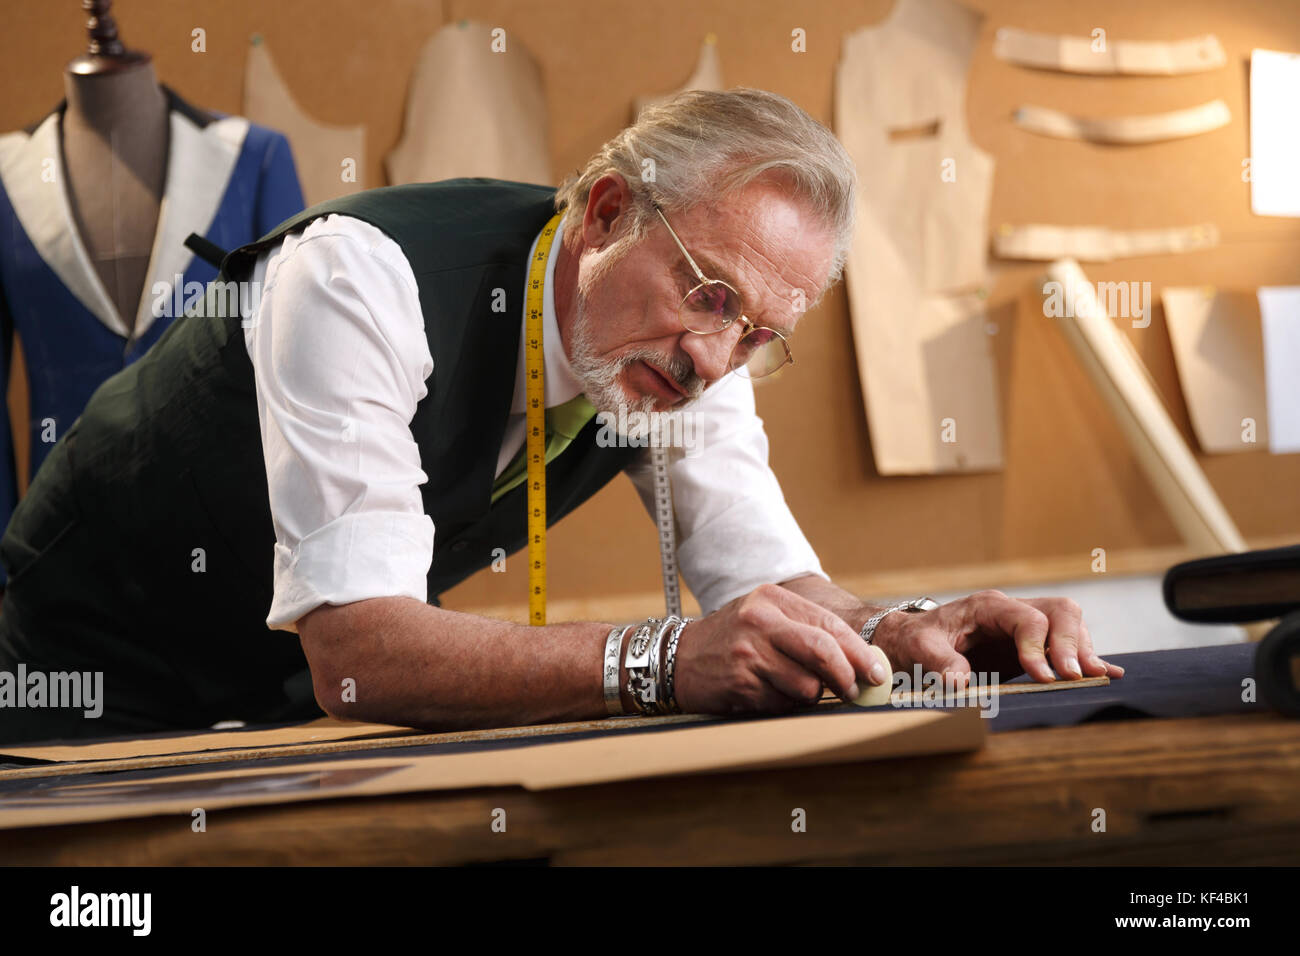 An authoritative fashion designer - Stock Image